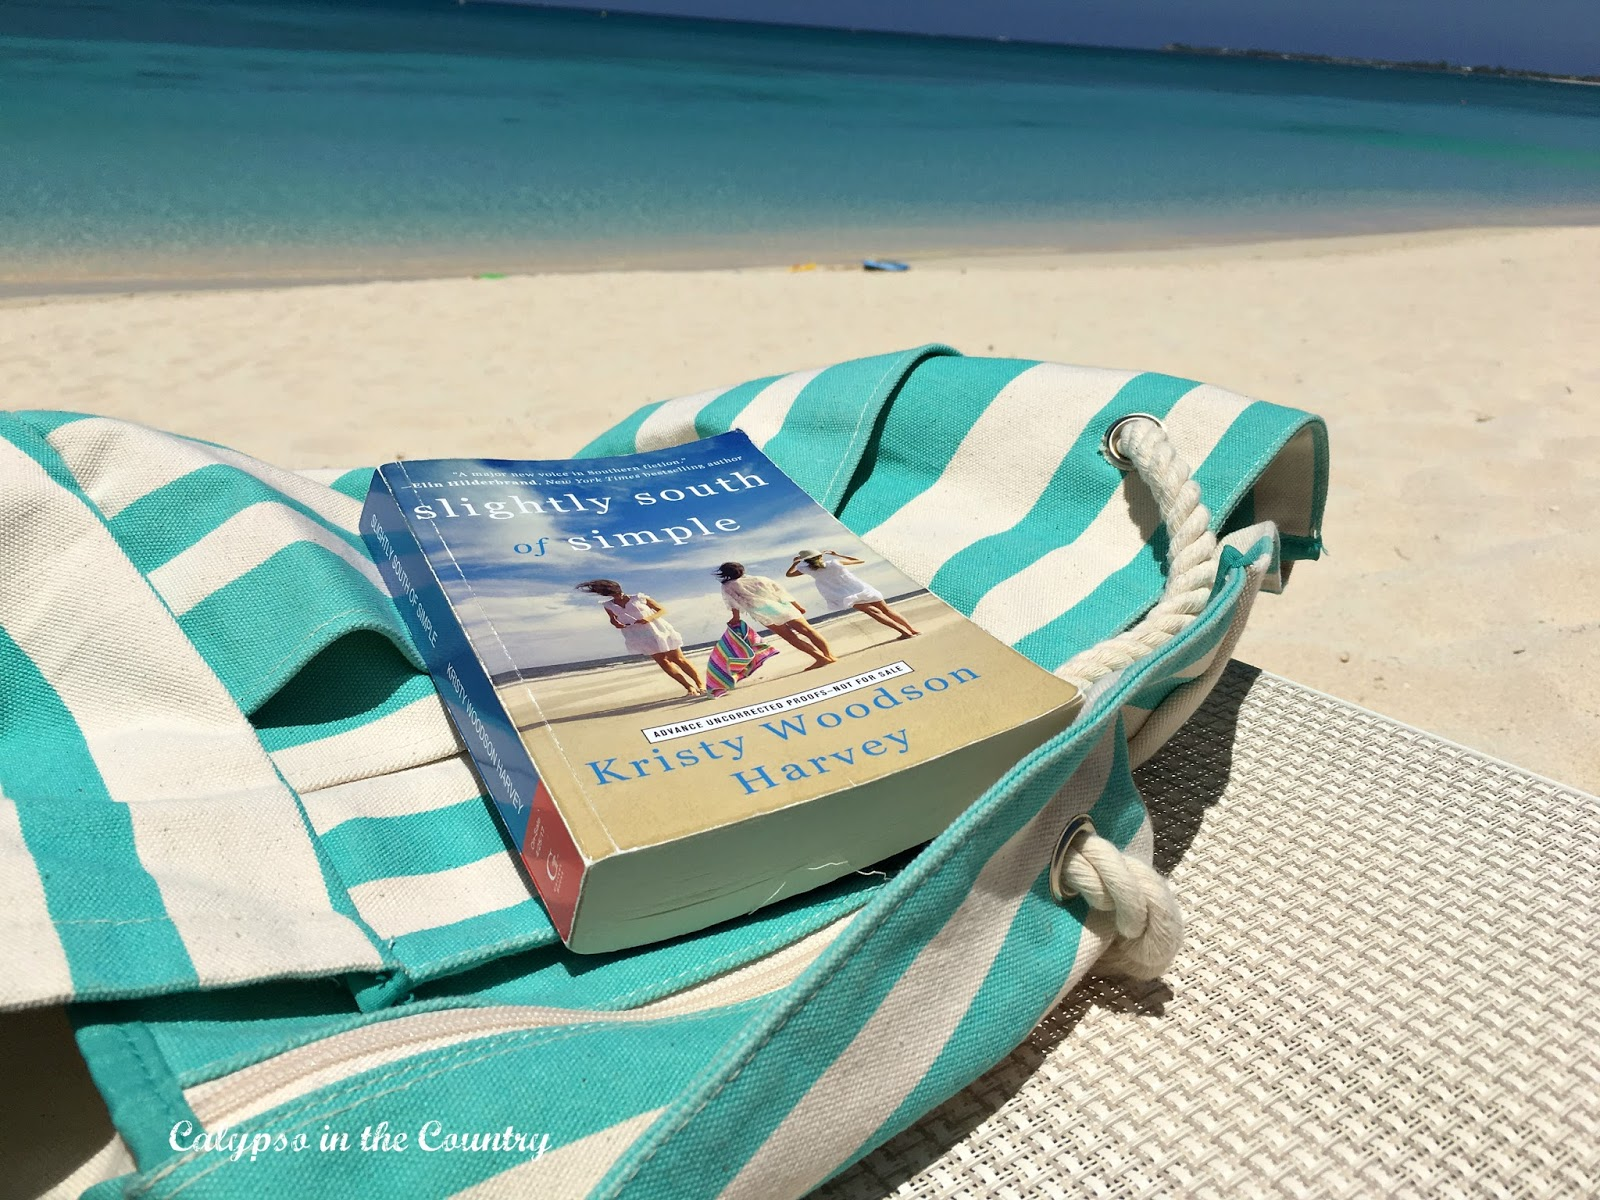 Southern Fiction on the beach - Slightly South of Simple Book Review